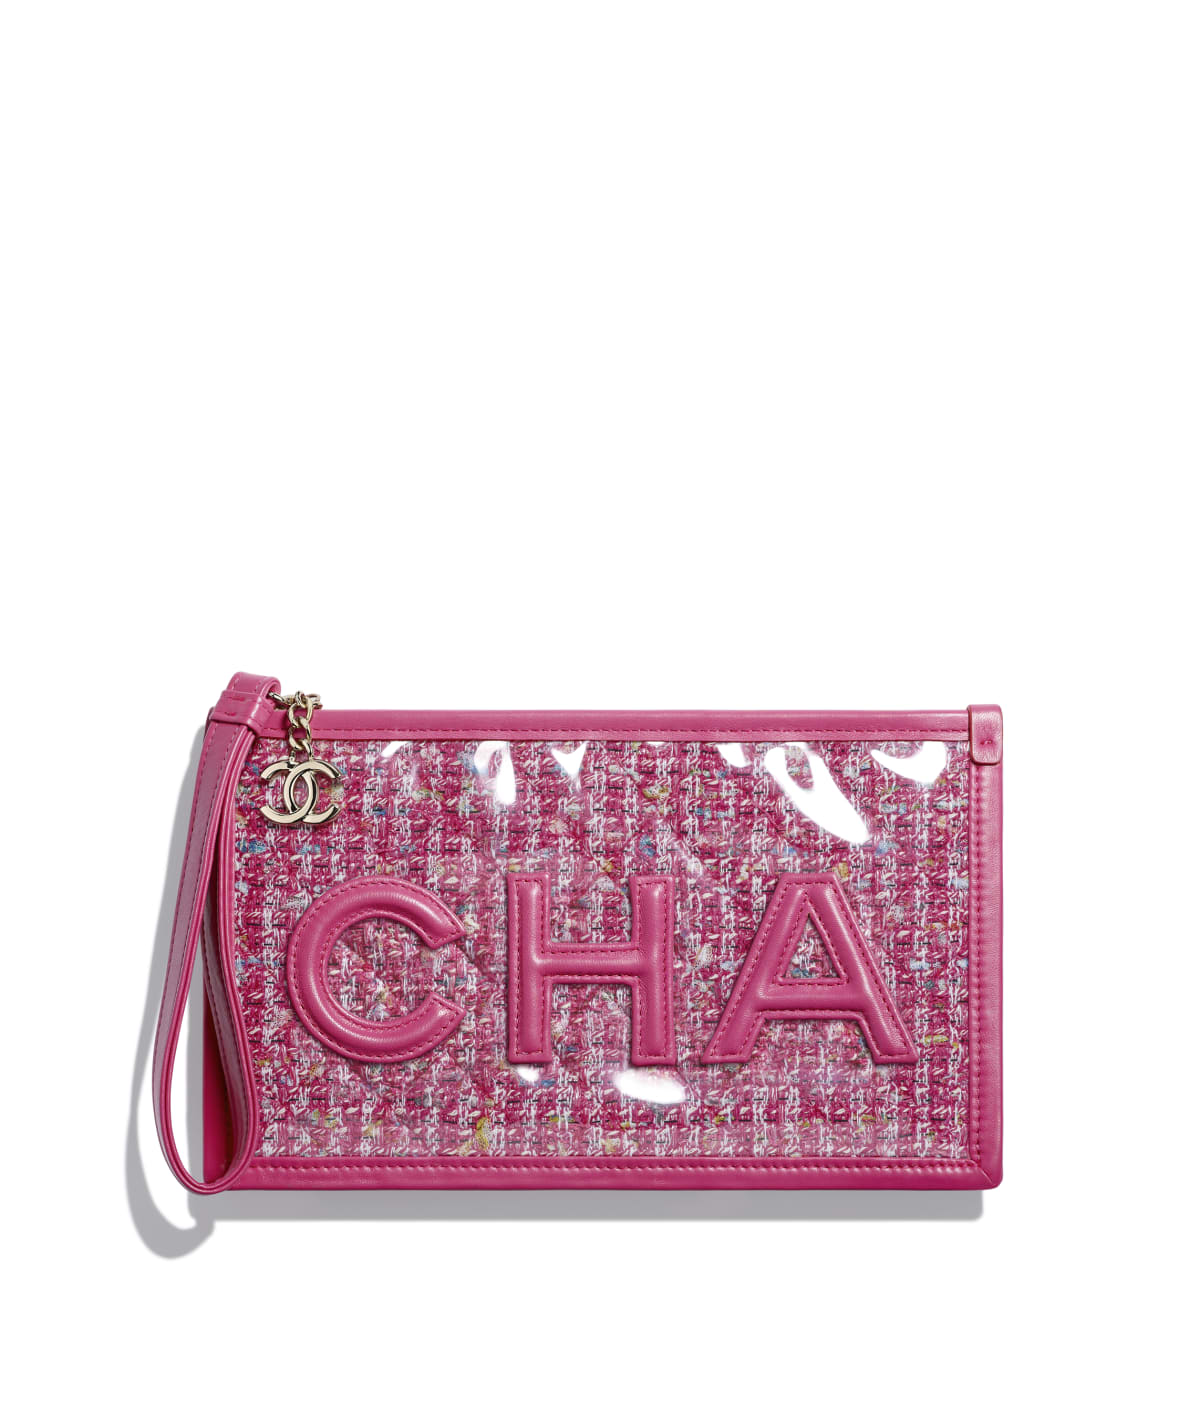 7511afaa8d89 Pouches   Cases - Small Leather Goods - CHANEL